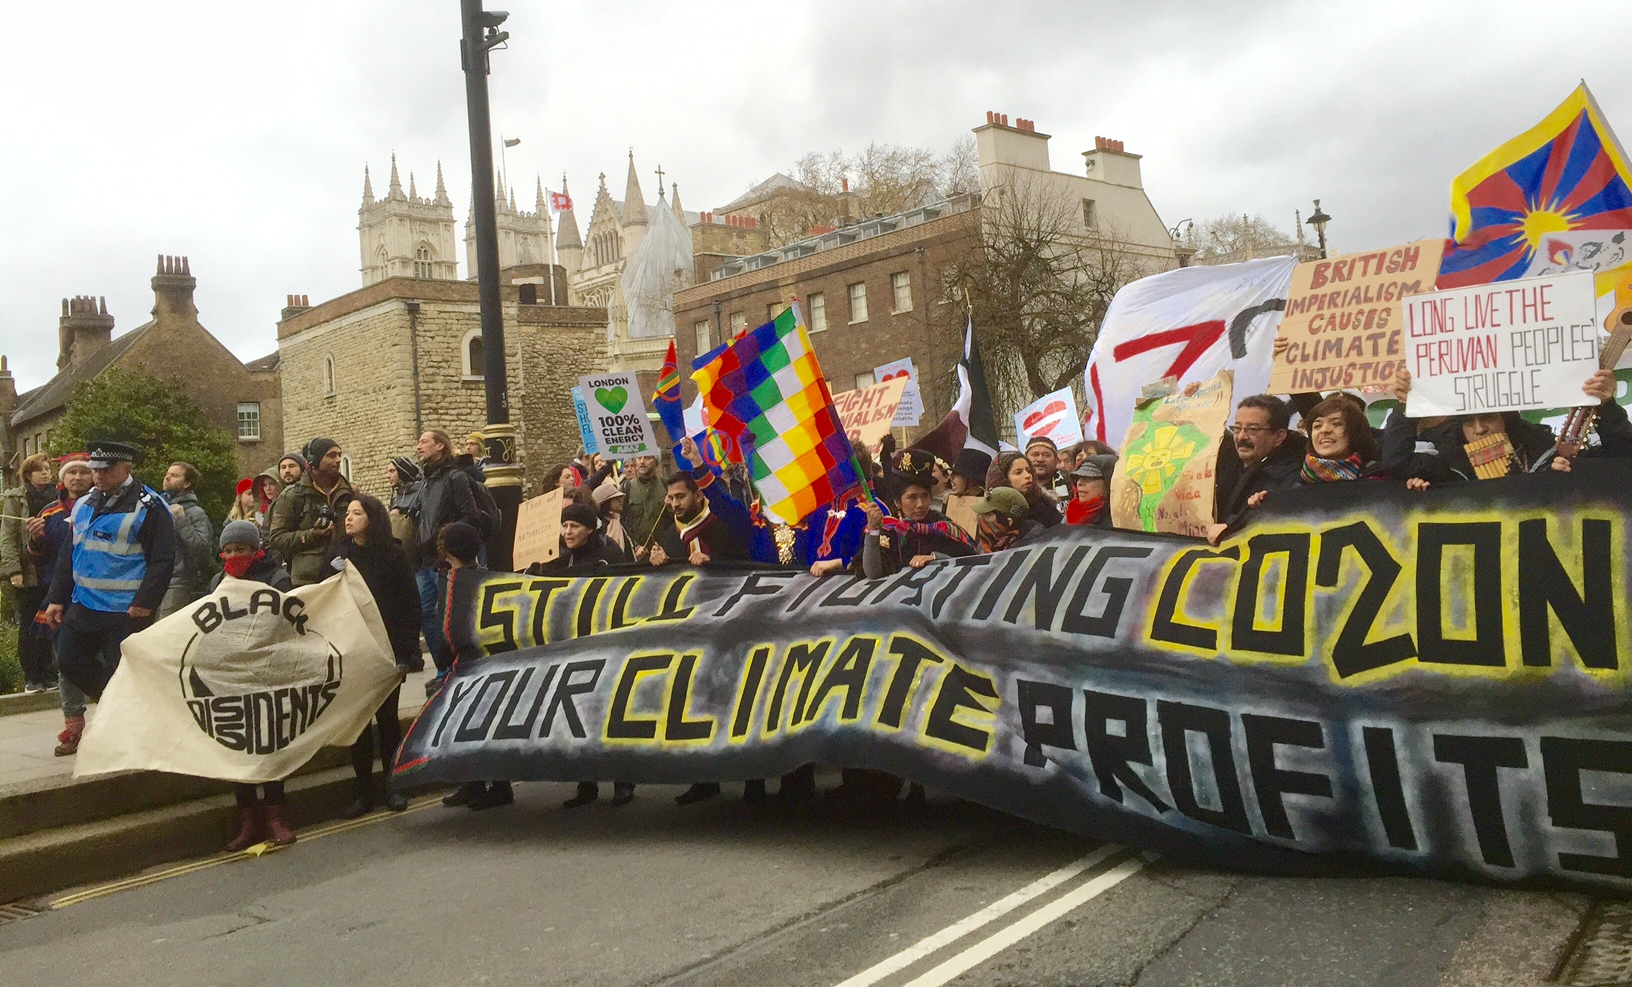 People's Climate March 2015